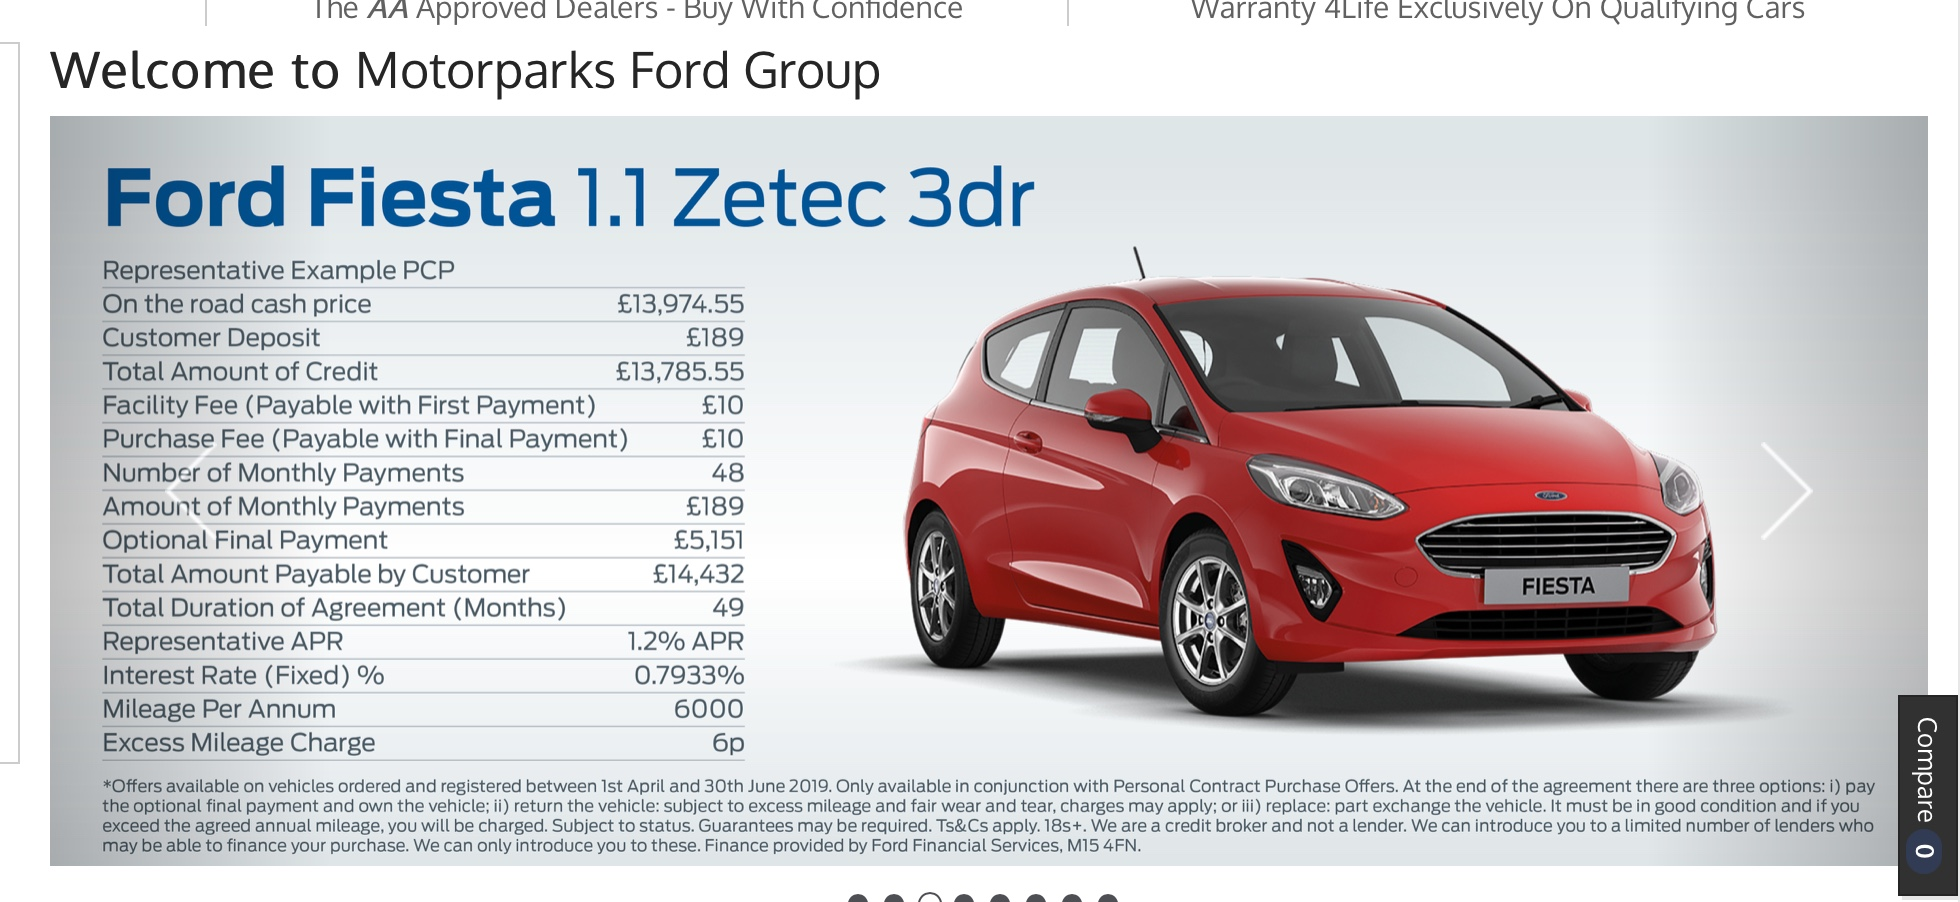 Buyers more likely to buy UK manufactured car in than